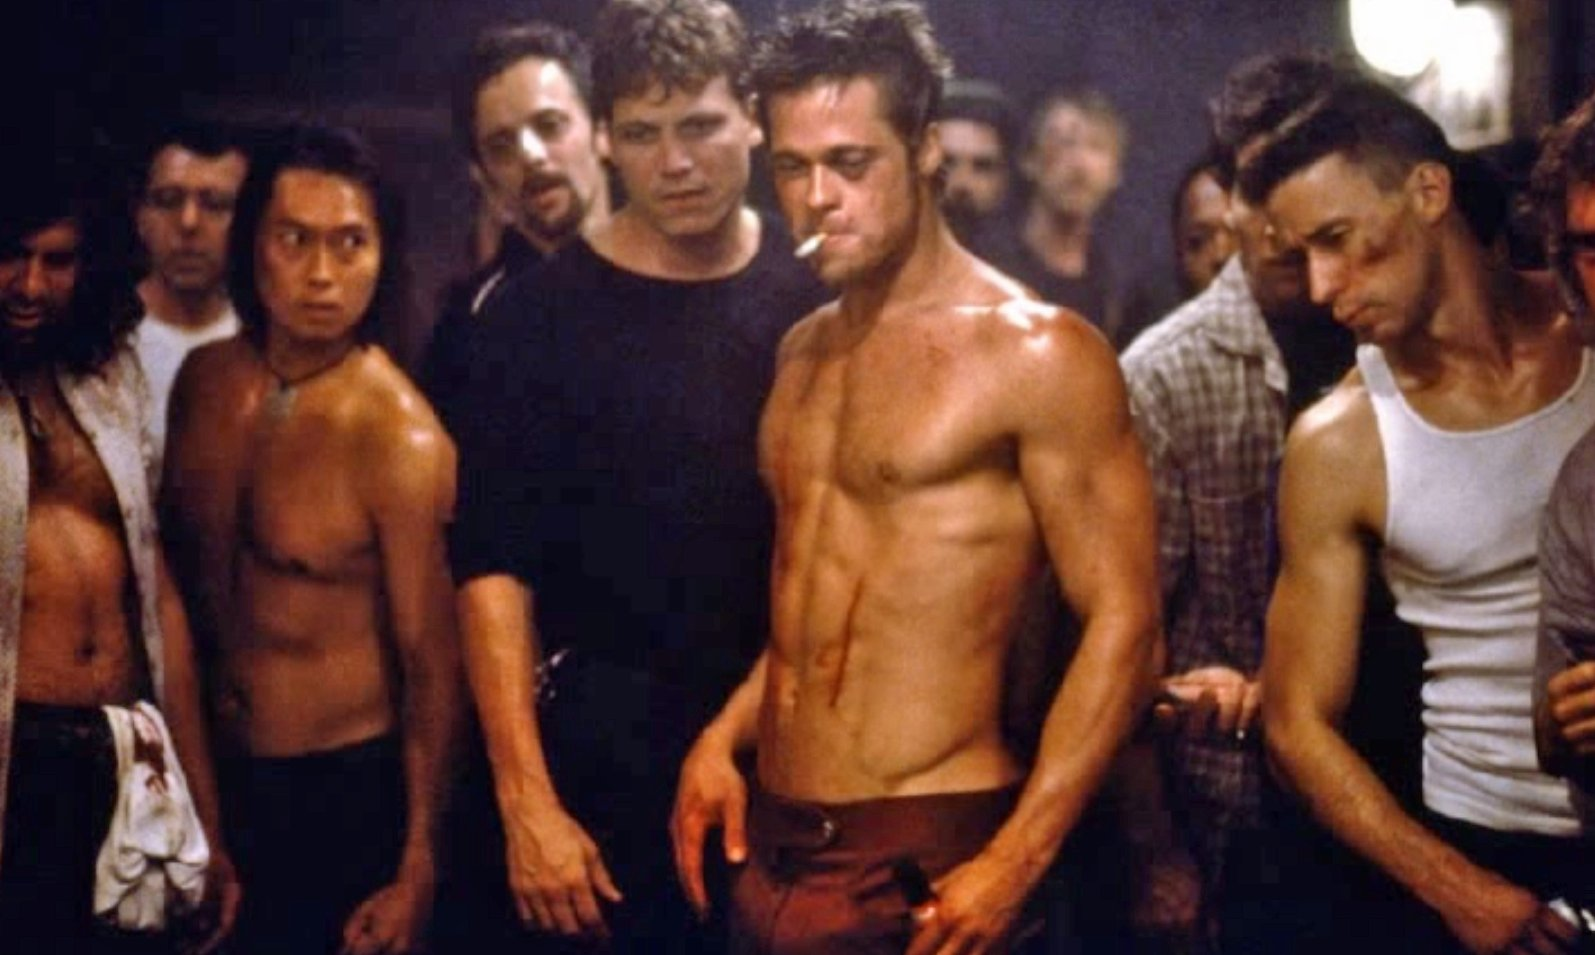 brad pitt, tyler durden, fight club